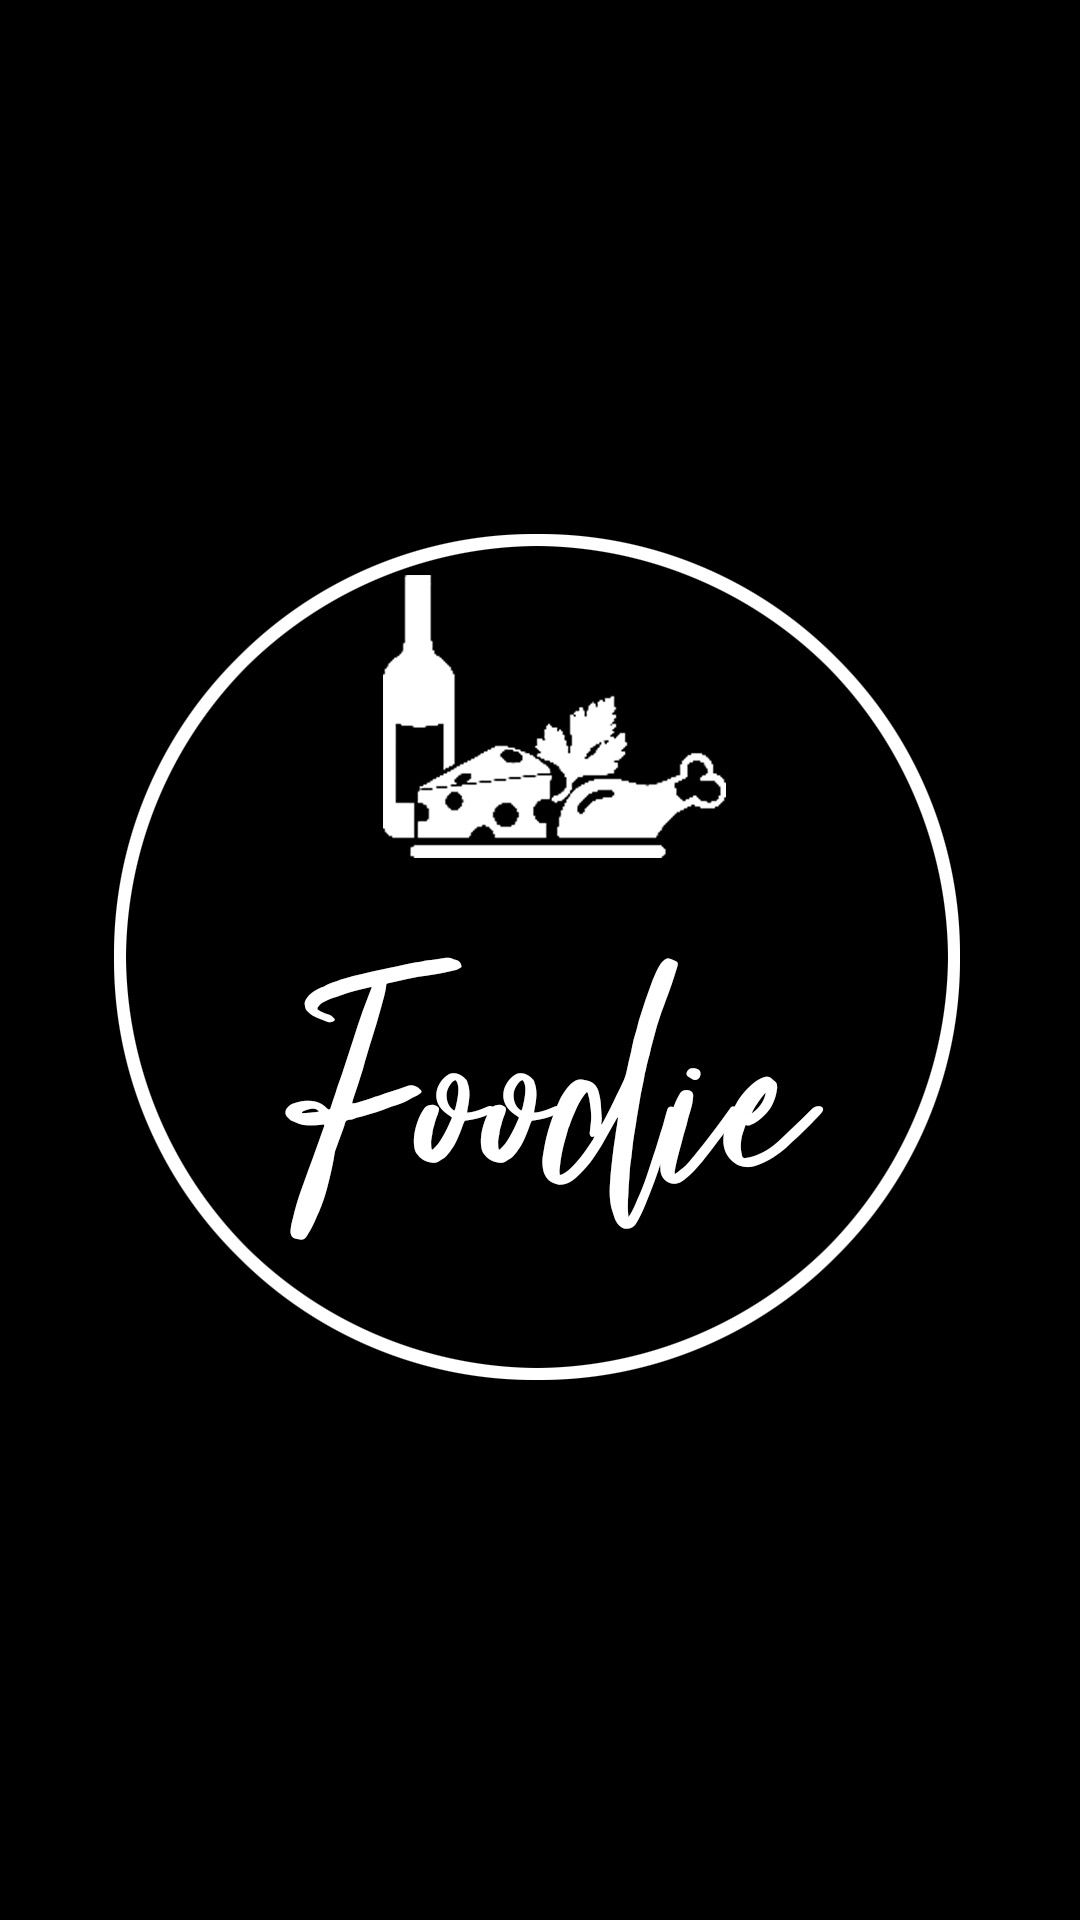 Food Instagram Highlight Story Cover Instagramcover Highlight Instastory Foodie Food Instagram Food Instagram Black Theme Instagram Aesthetic